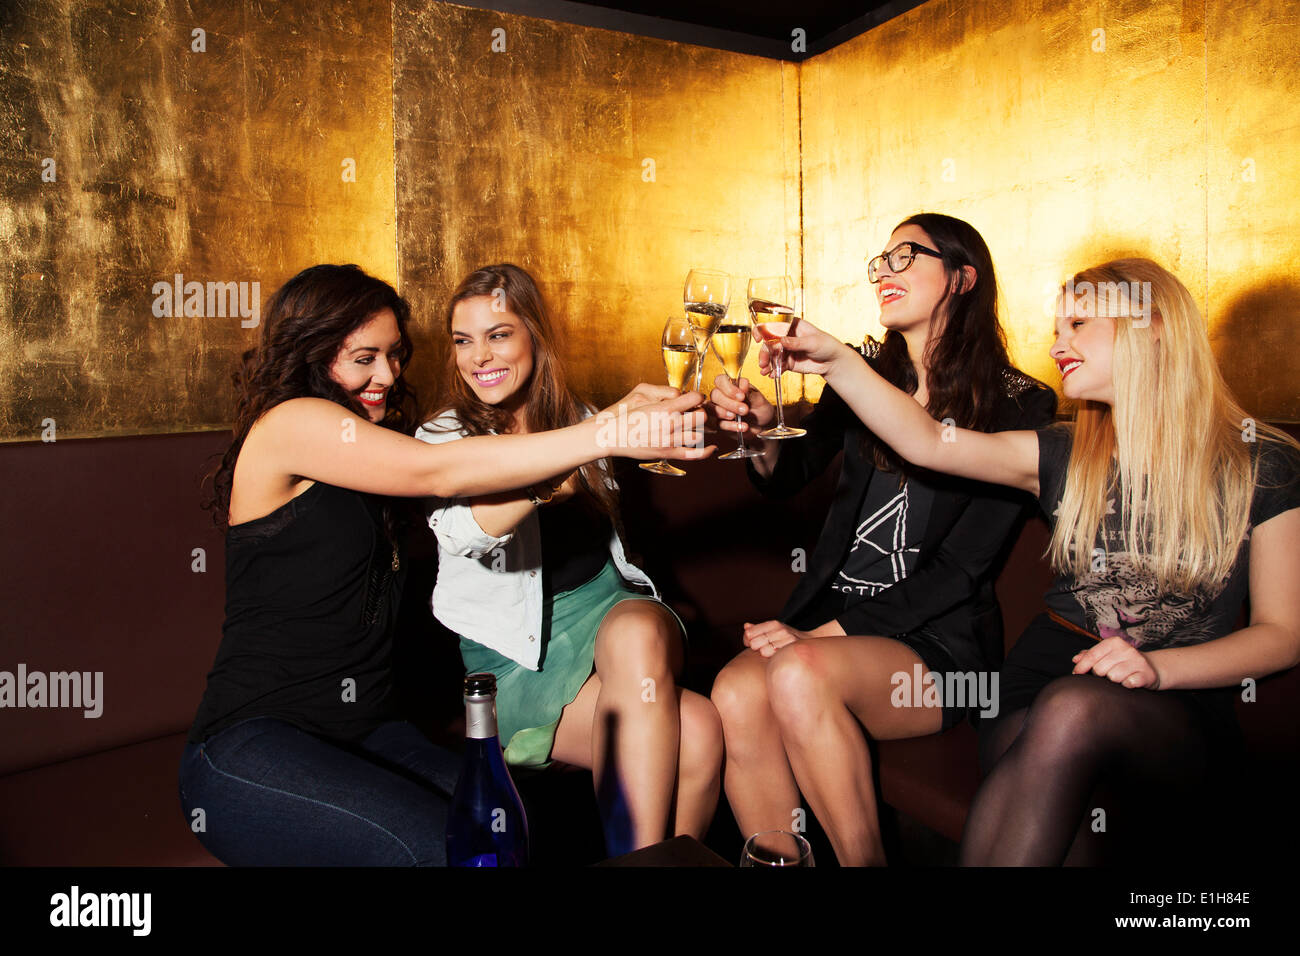 Four female friends toasting with wine in nightclub - Stock Image